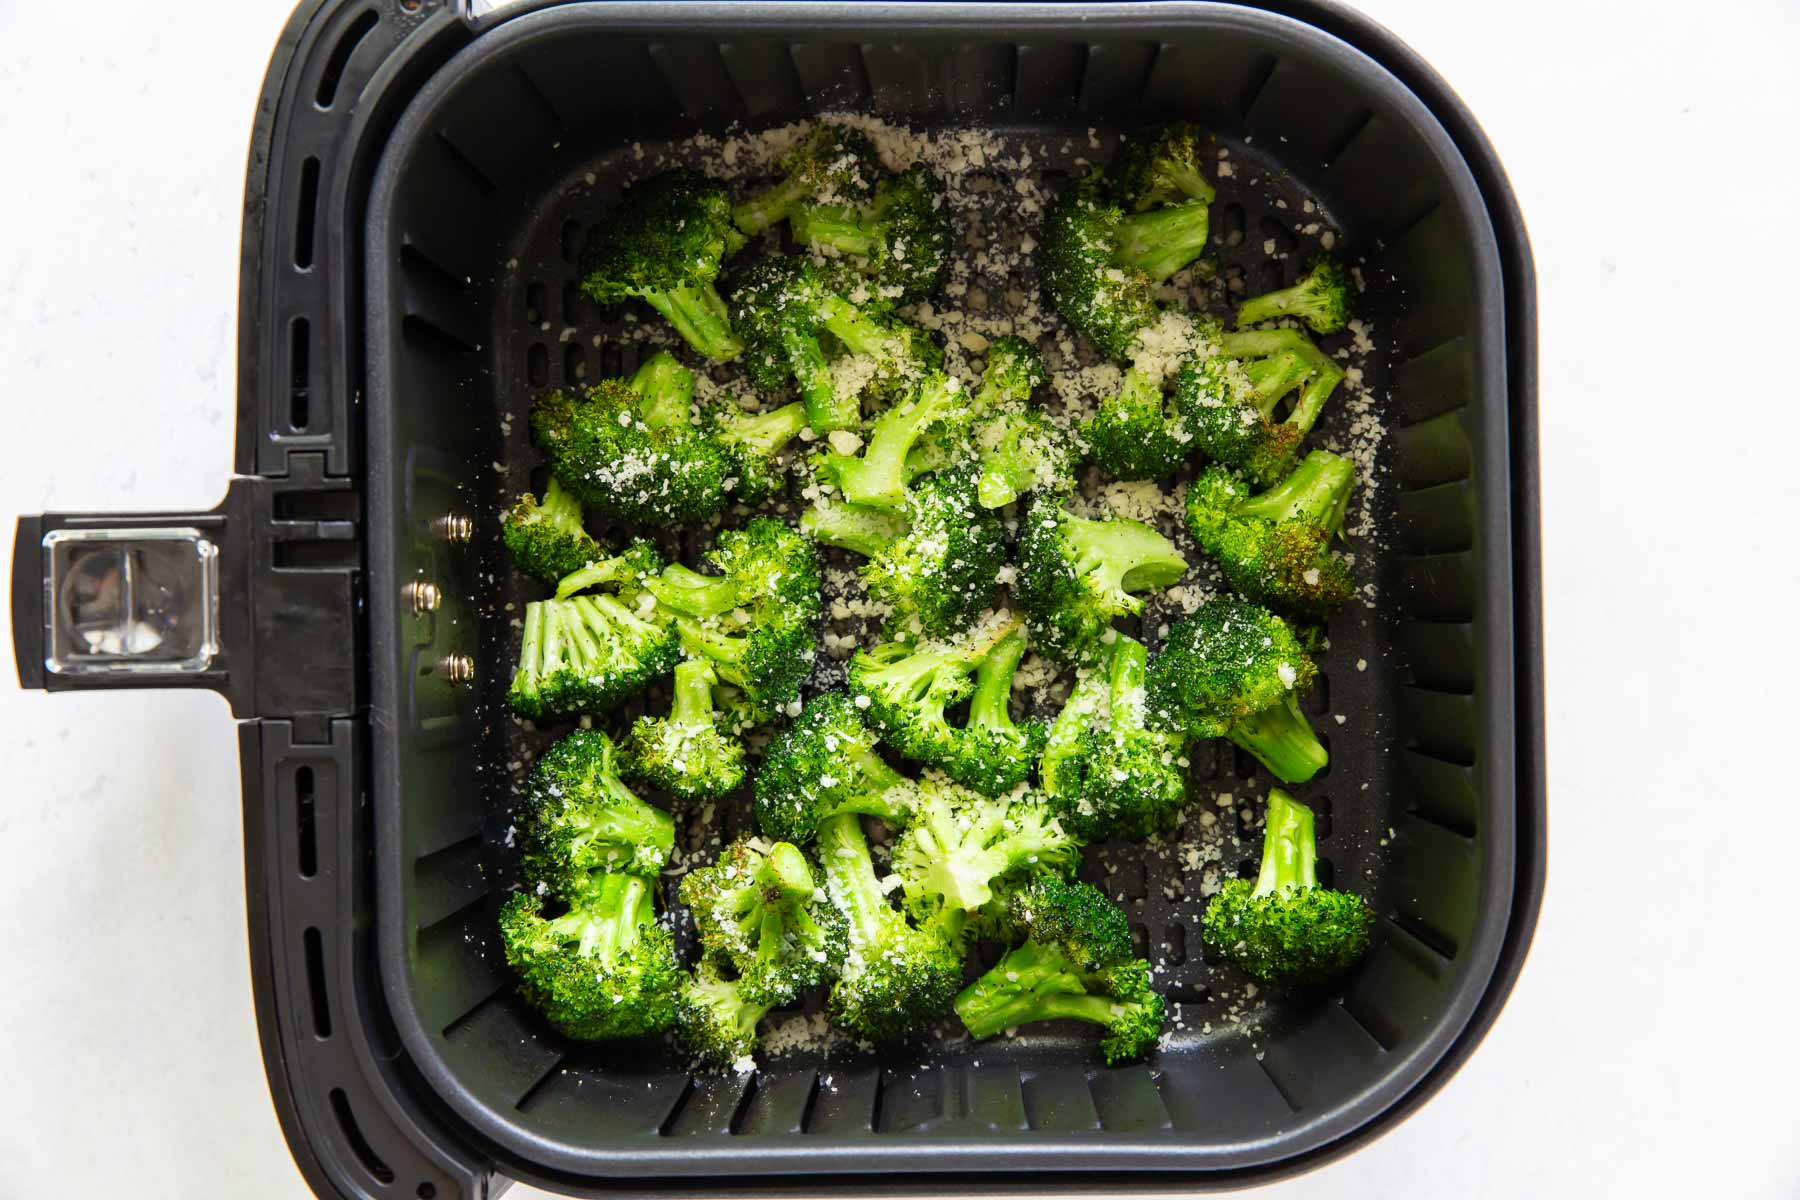 parmesan cheese added to broccoli in air fryer basket